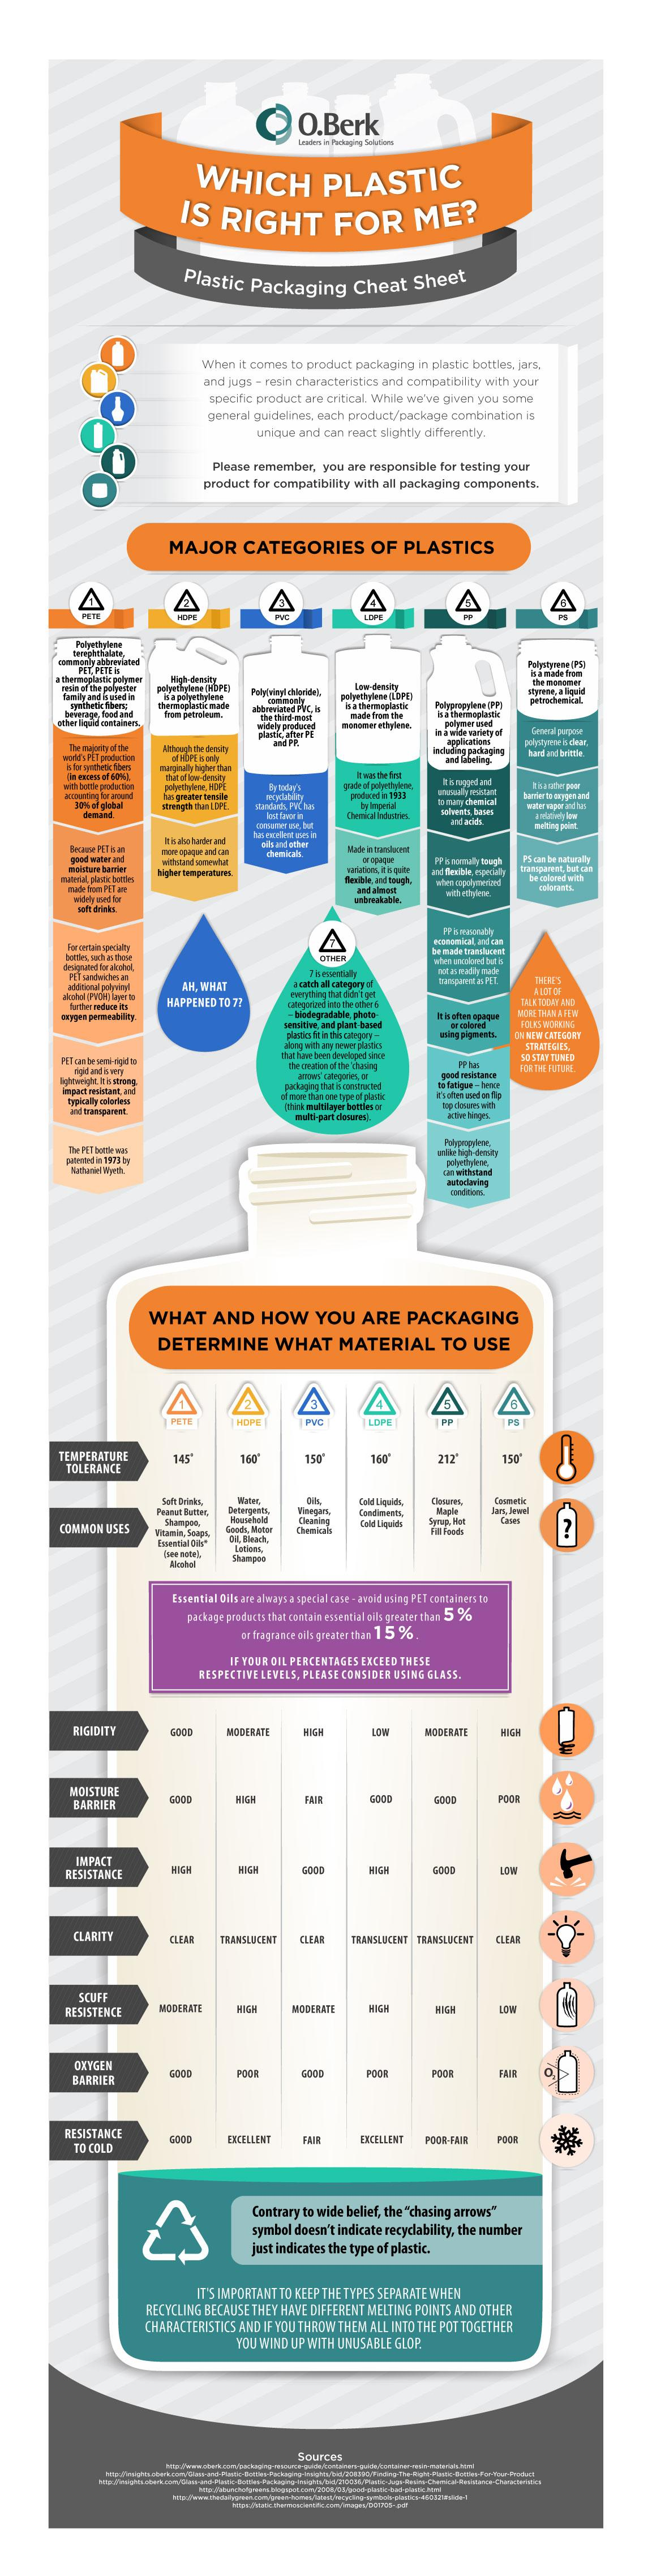 Infographic] The Plastic Packaging Cheat Sheet | Dienamics